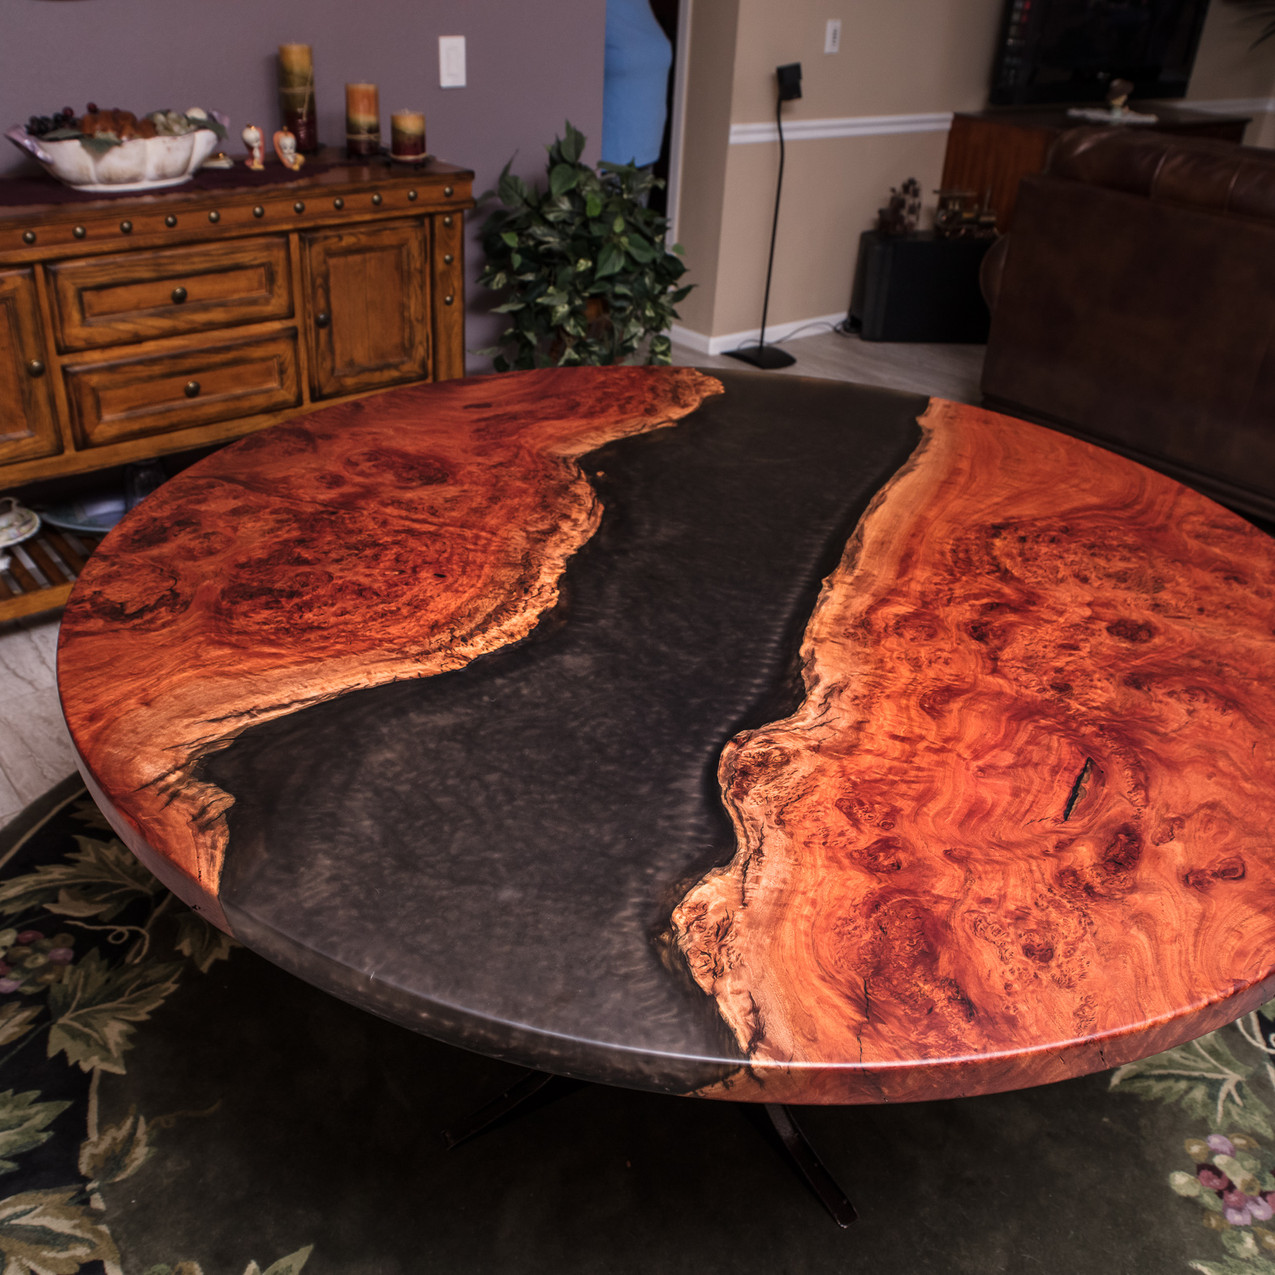 """We created this one of a kind rustic modern resin river live edge dining table from reclaimed urban Eucalyptus Red Gum burl slabs with """"space resin"""" pigment obre-clear resin river art feature."""